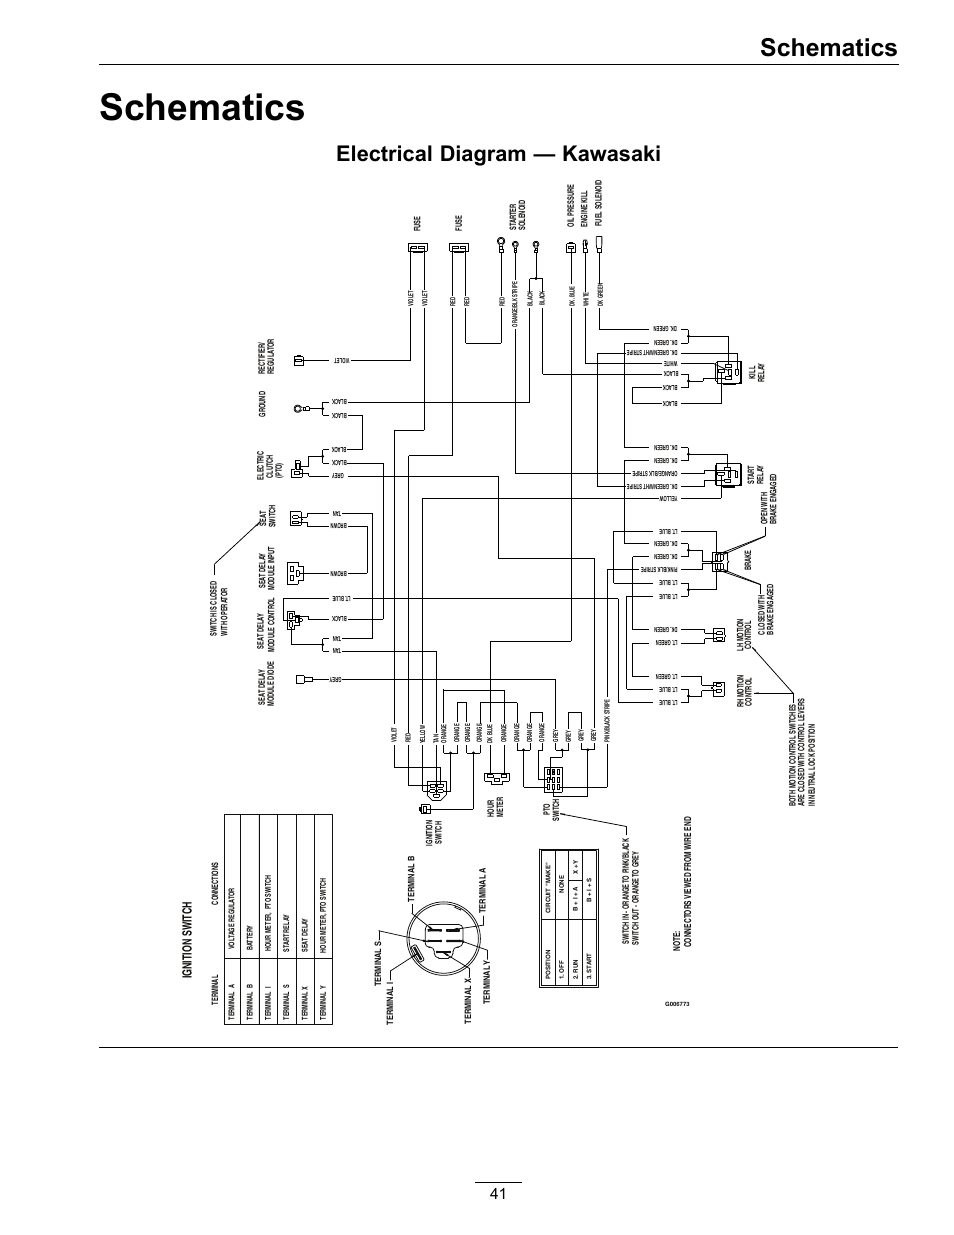 schematics  electrical diagram  u2014 kawasaki  ignition switch